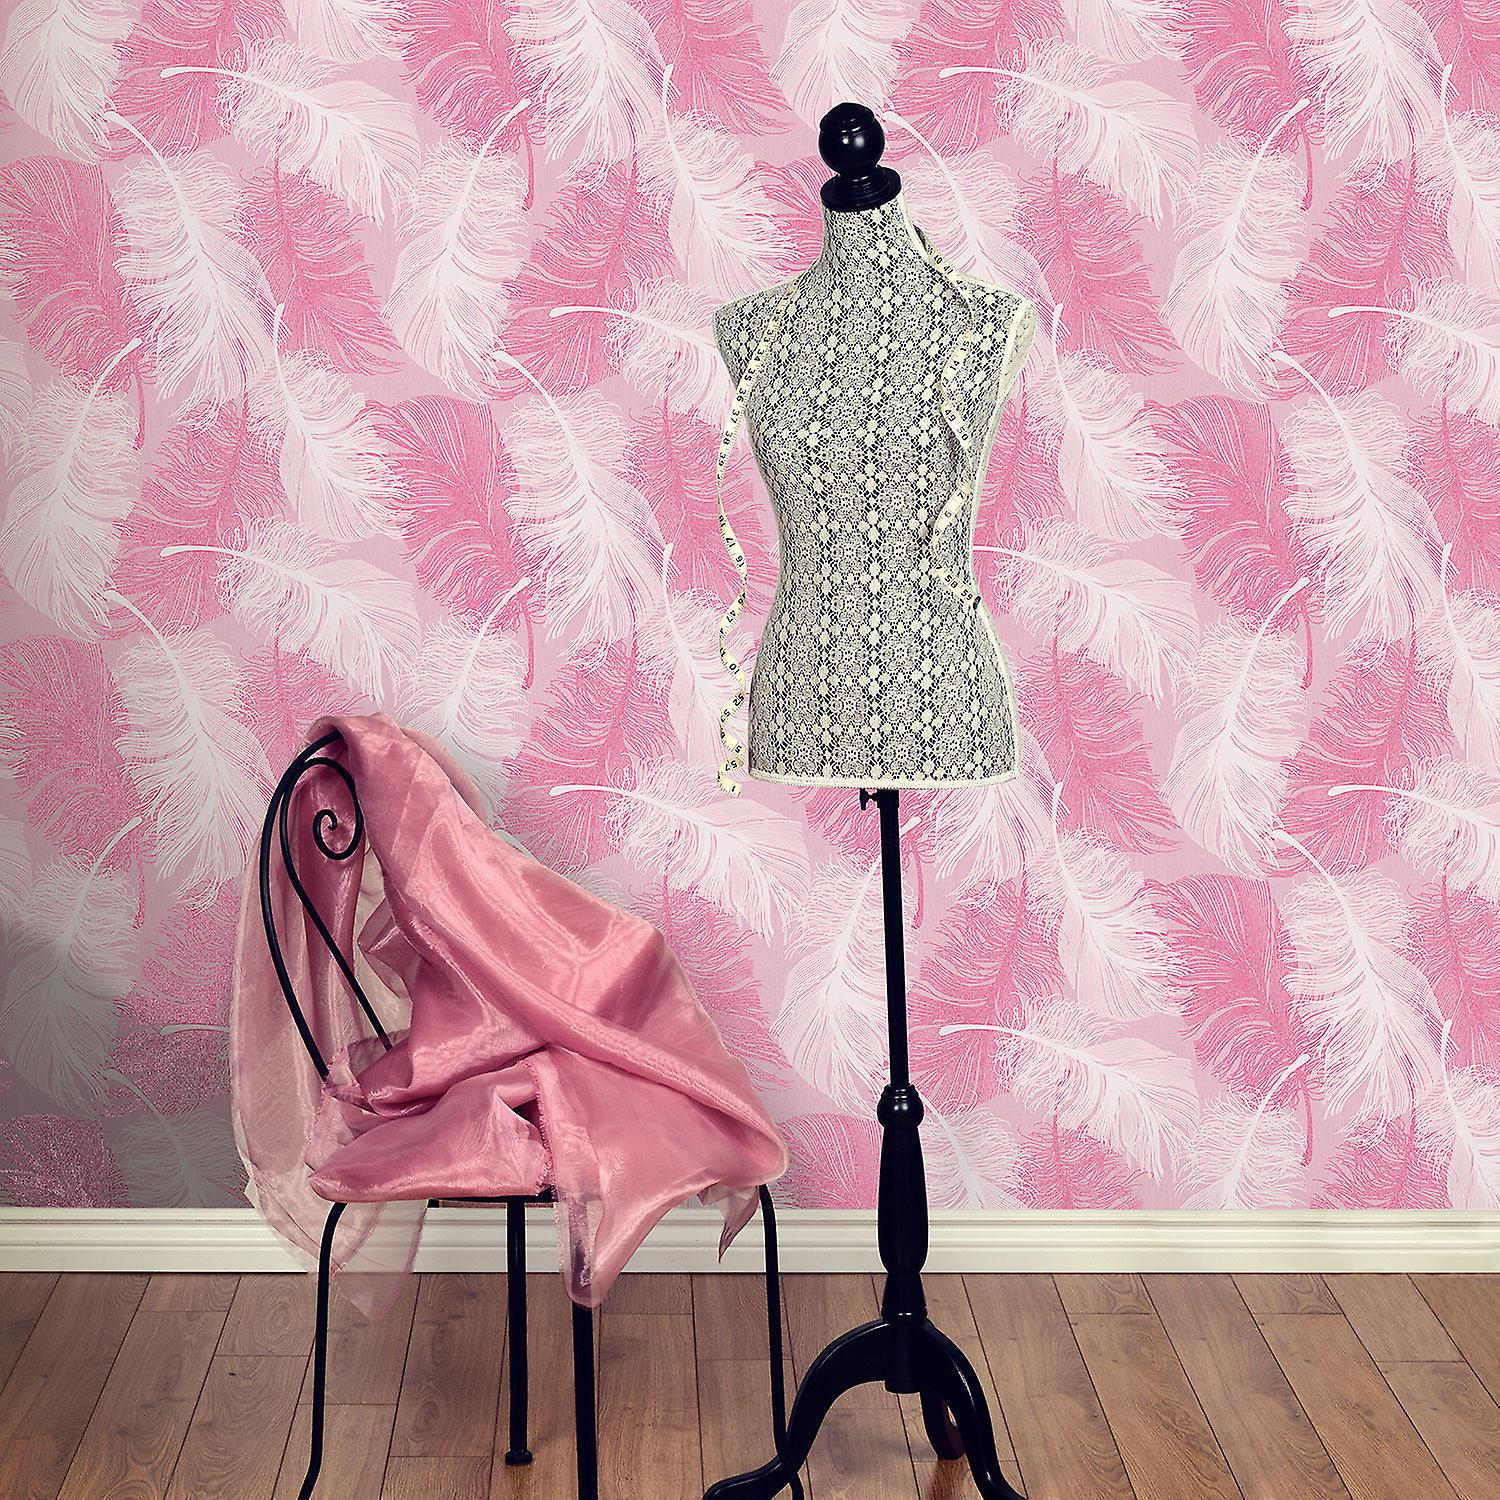 Feather Wallpaper Quill Modern Glitter Effect Textured Vinyl Pink White Coloroll